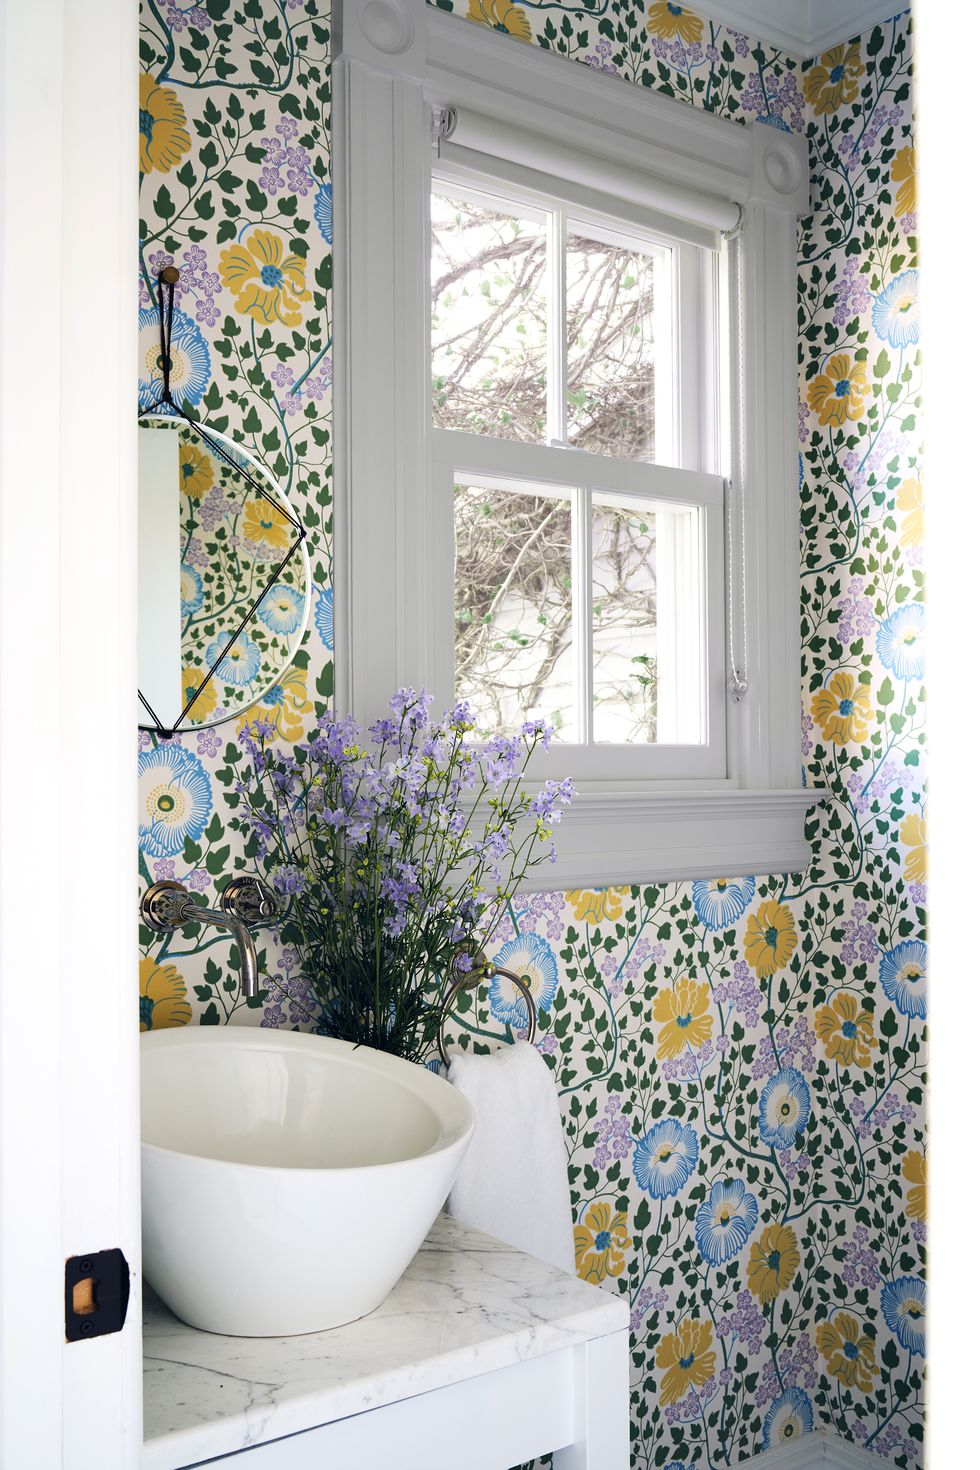 These Chic Wallpapered Bathrooms Will Convince You to Take the Plunge